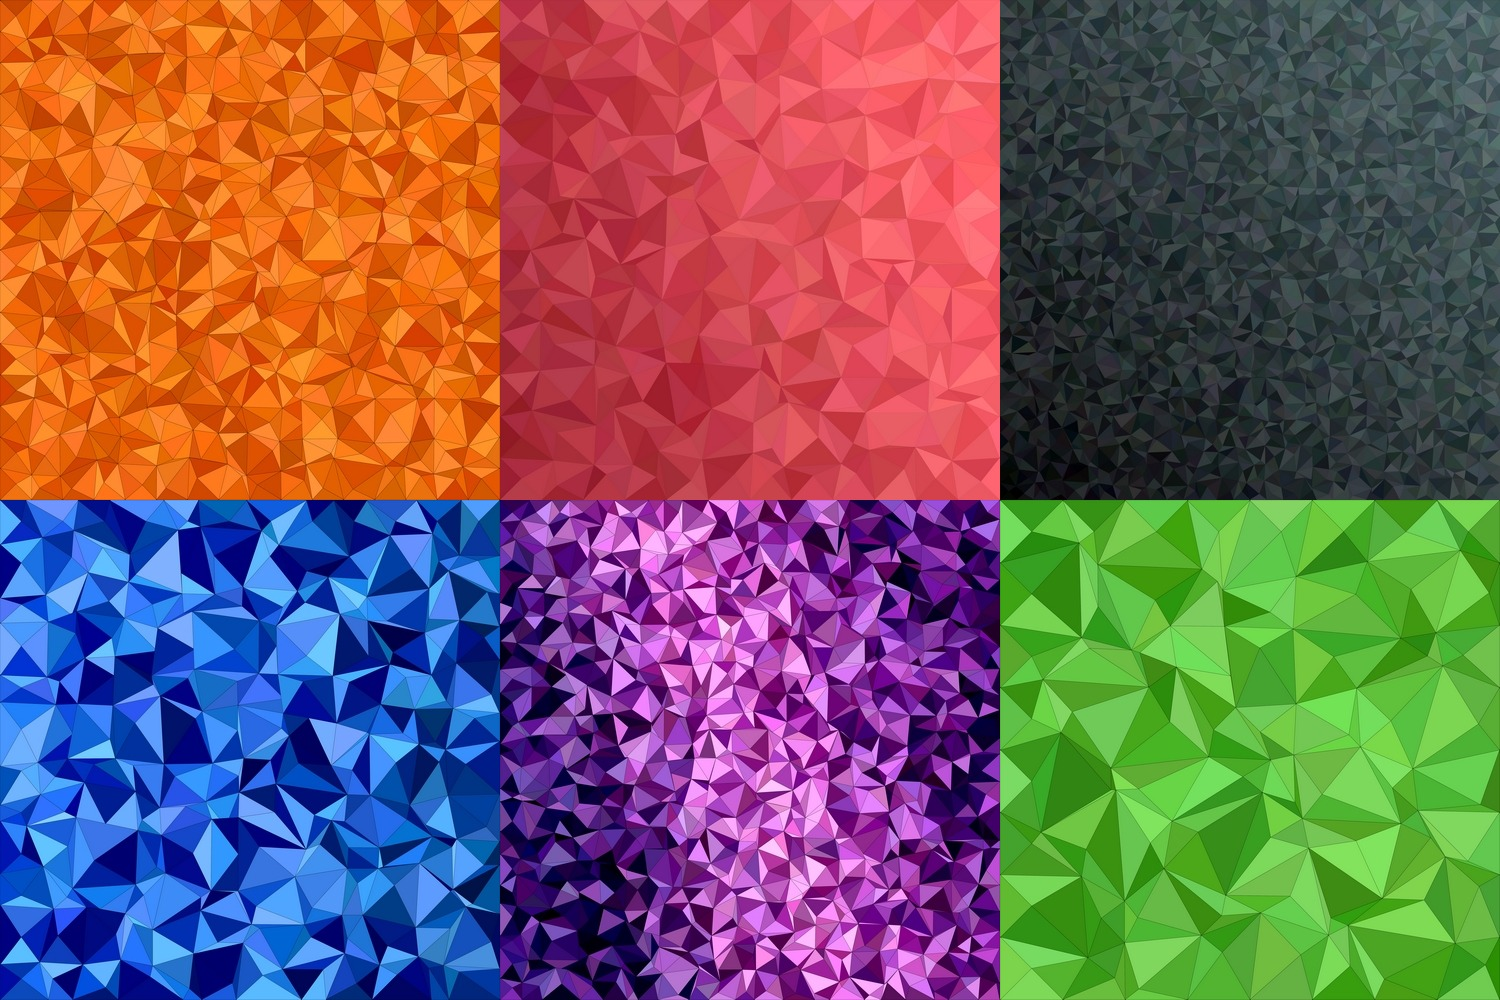 50 colorful triangle backgrounds (AI, EPS, JPG 5000x5000) example image 2